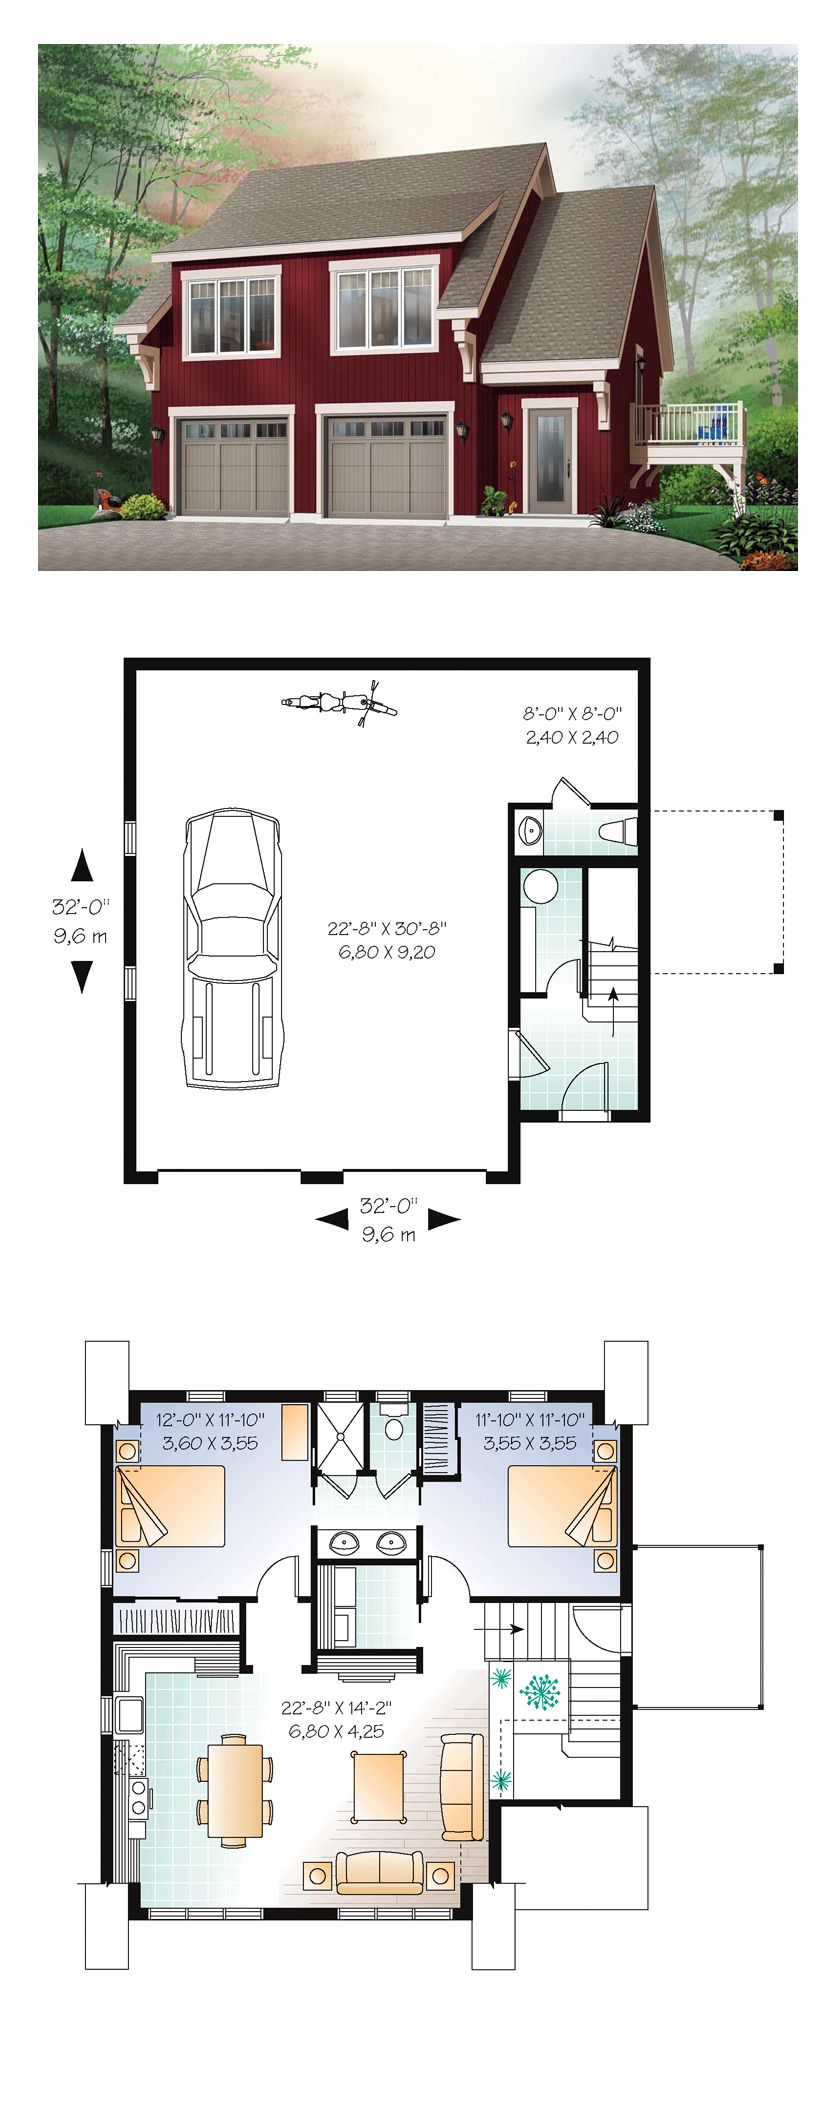 Garage Apartment Plan 64817 | Total Living Area: 1068 sq ...